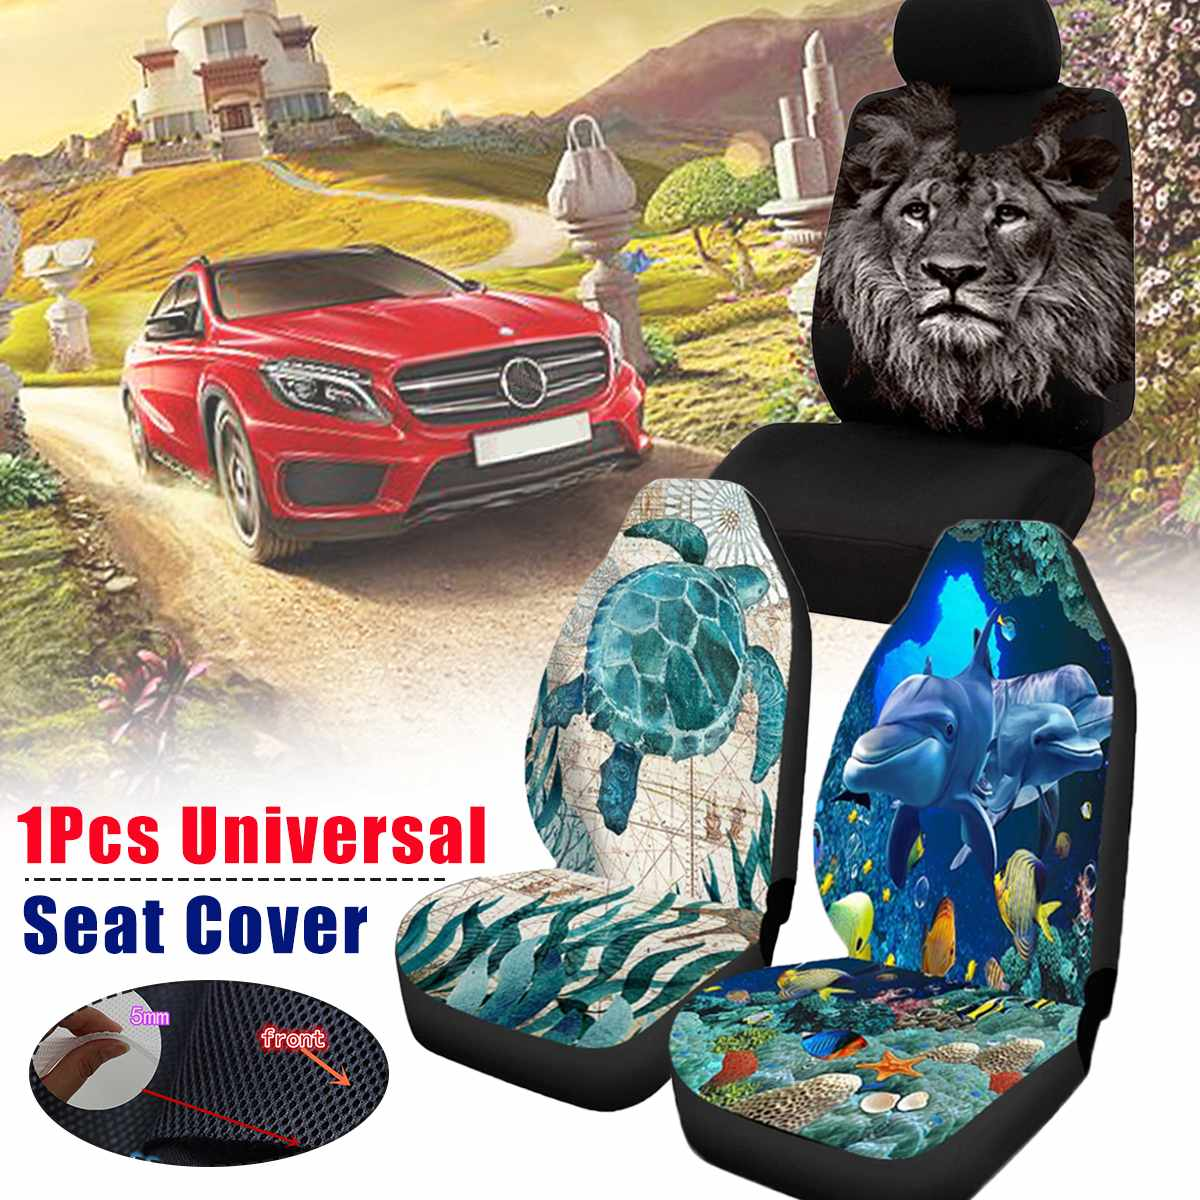 Universal Animal Sea Turtle Dolphin Lion Printed Car Seat Cover Elastic Auto Seat Cushion Protector Cover For Car SUV